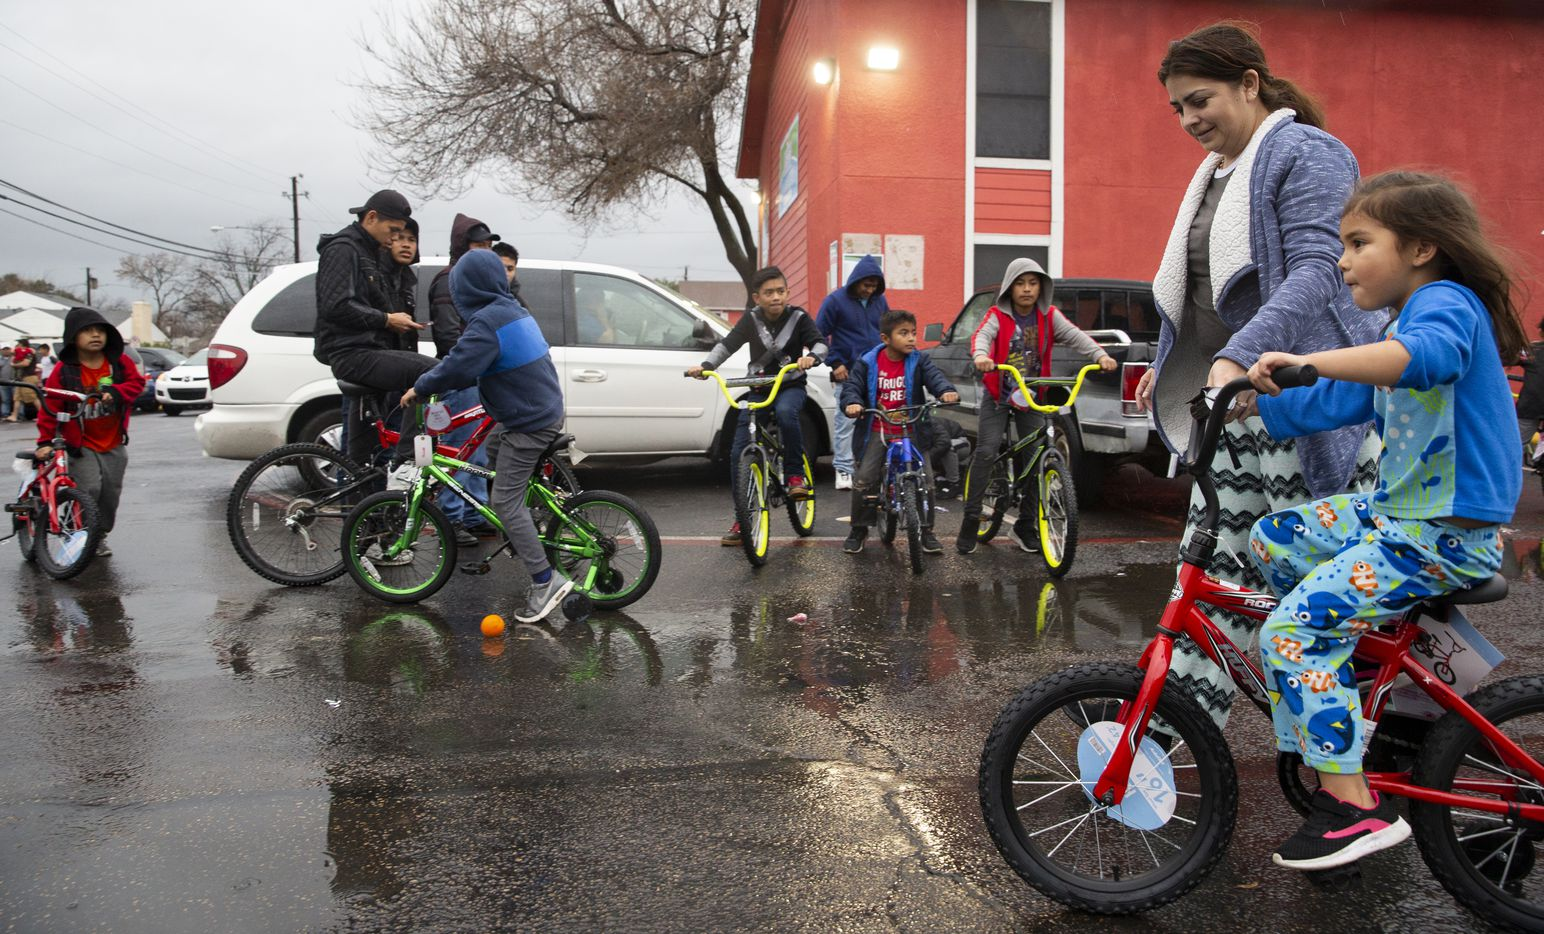 Families and children tried out new bikes they received from Israel Alonso, a local faith leader and volunteer with S.O.U.L. ministries on Dec. 28, 2019, in Dallas. With the help of Jennifer and Leon Birdd, Alonso helped provide his community with the bikes and food.